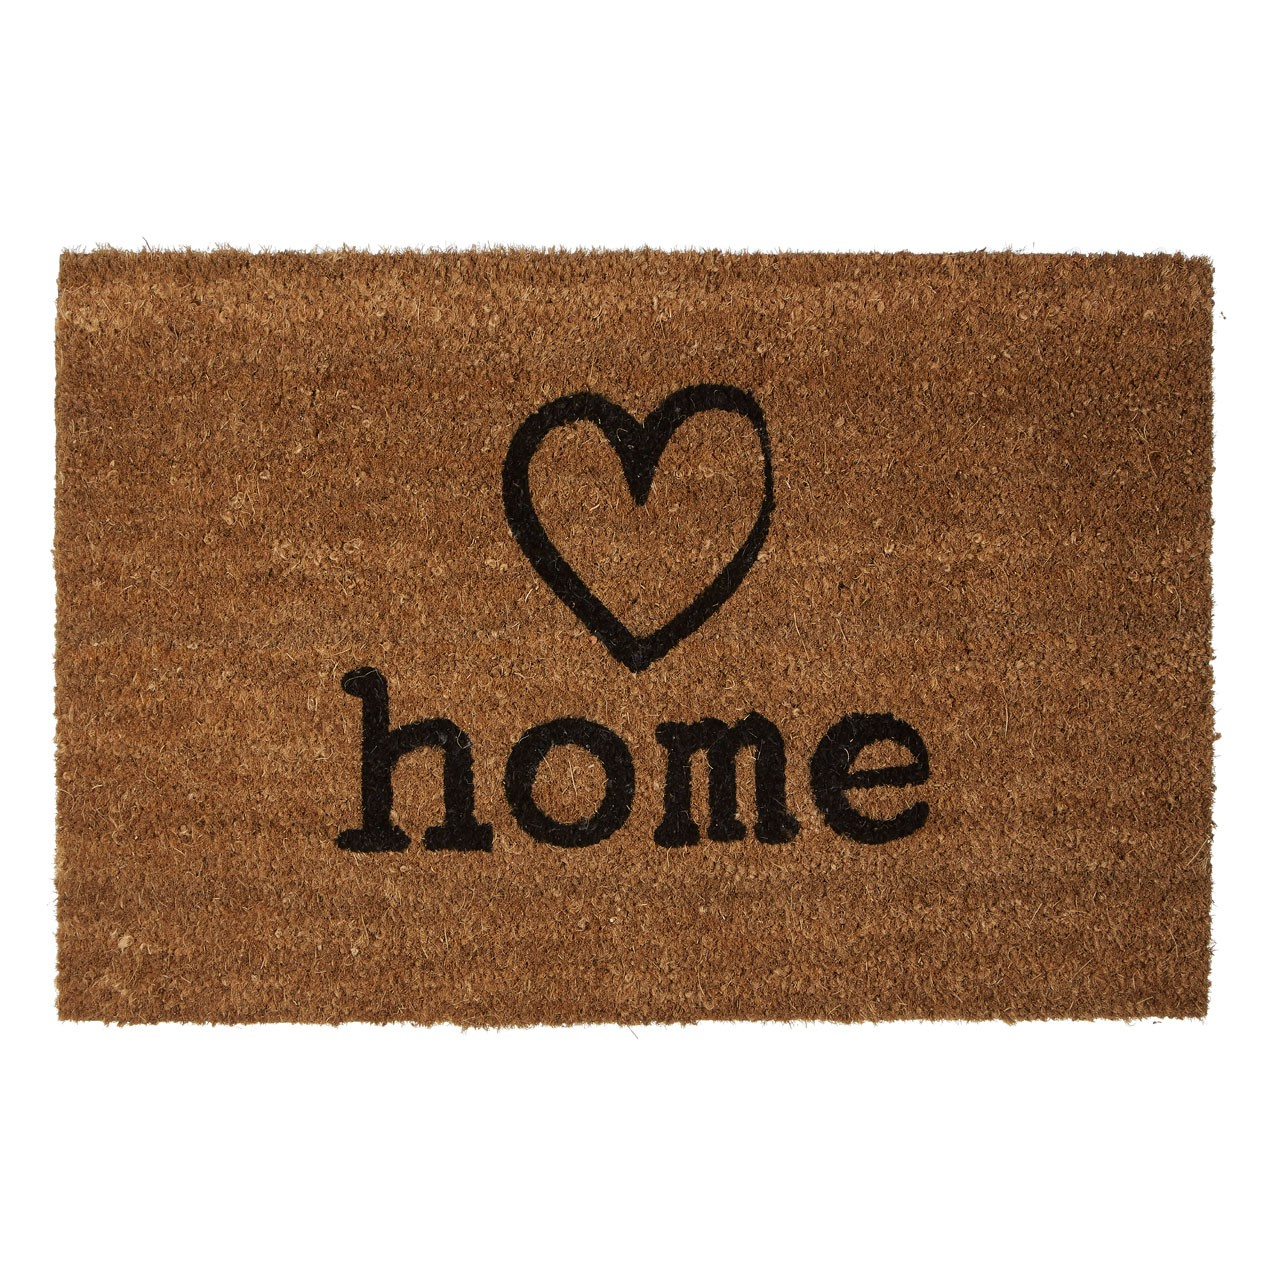 "Prime Furnishing ""Charm"" Doormat, PVC Backed Coir"